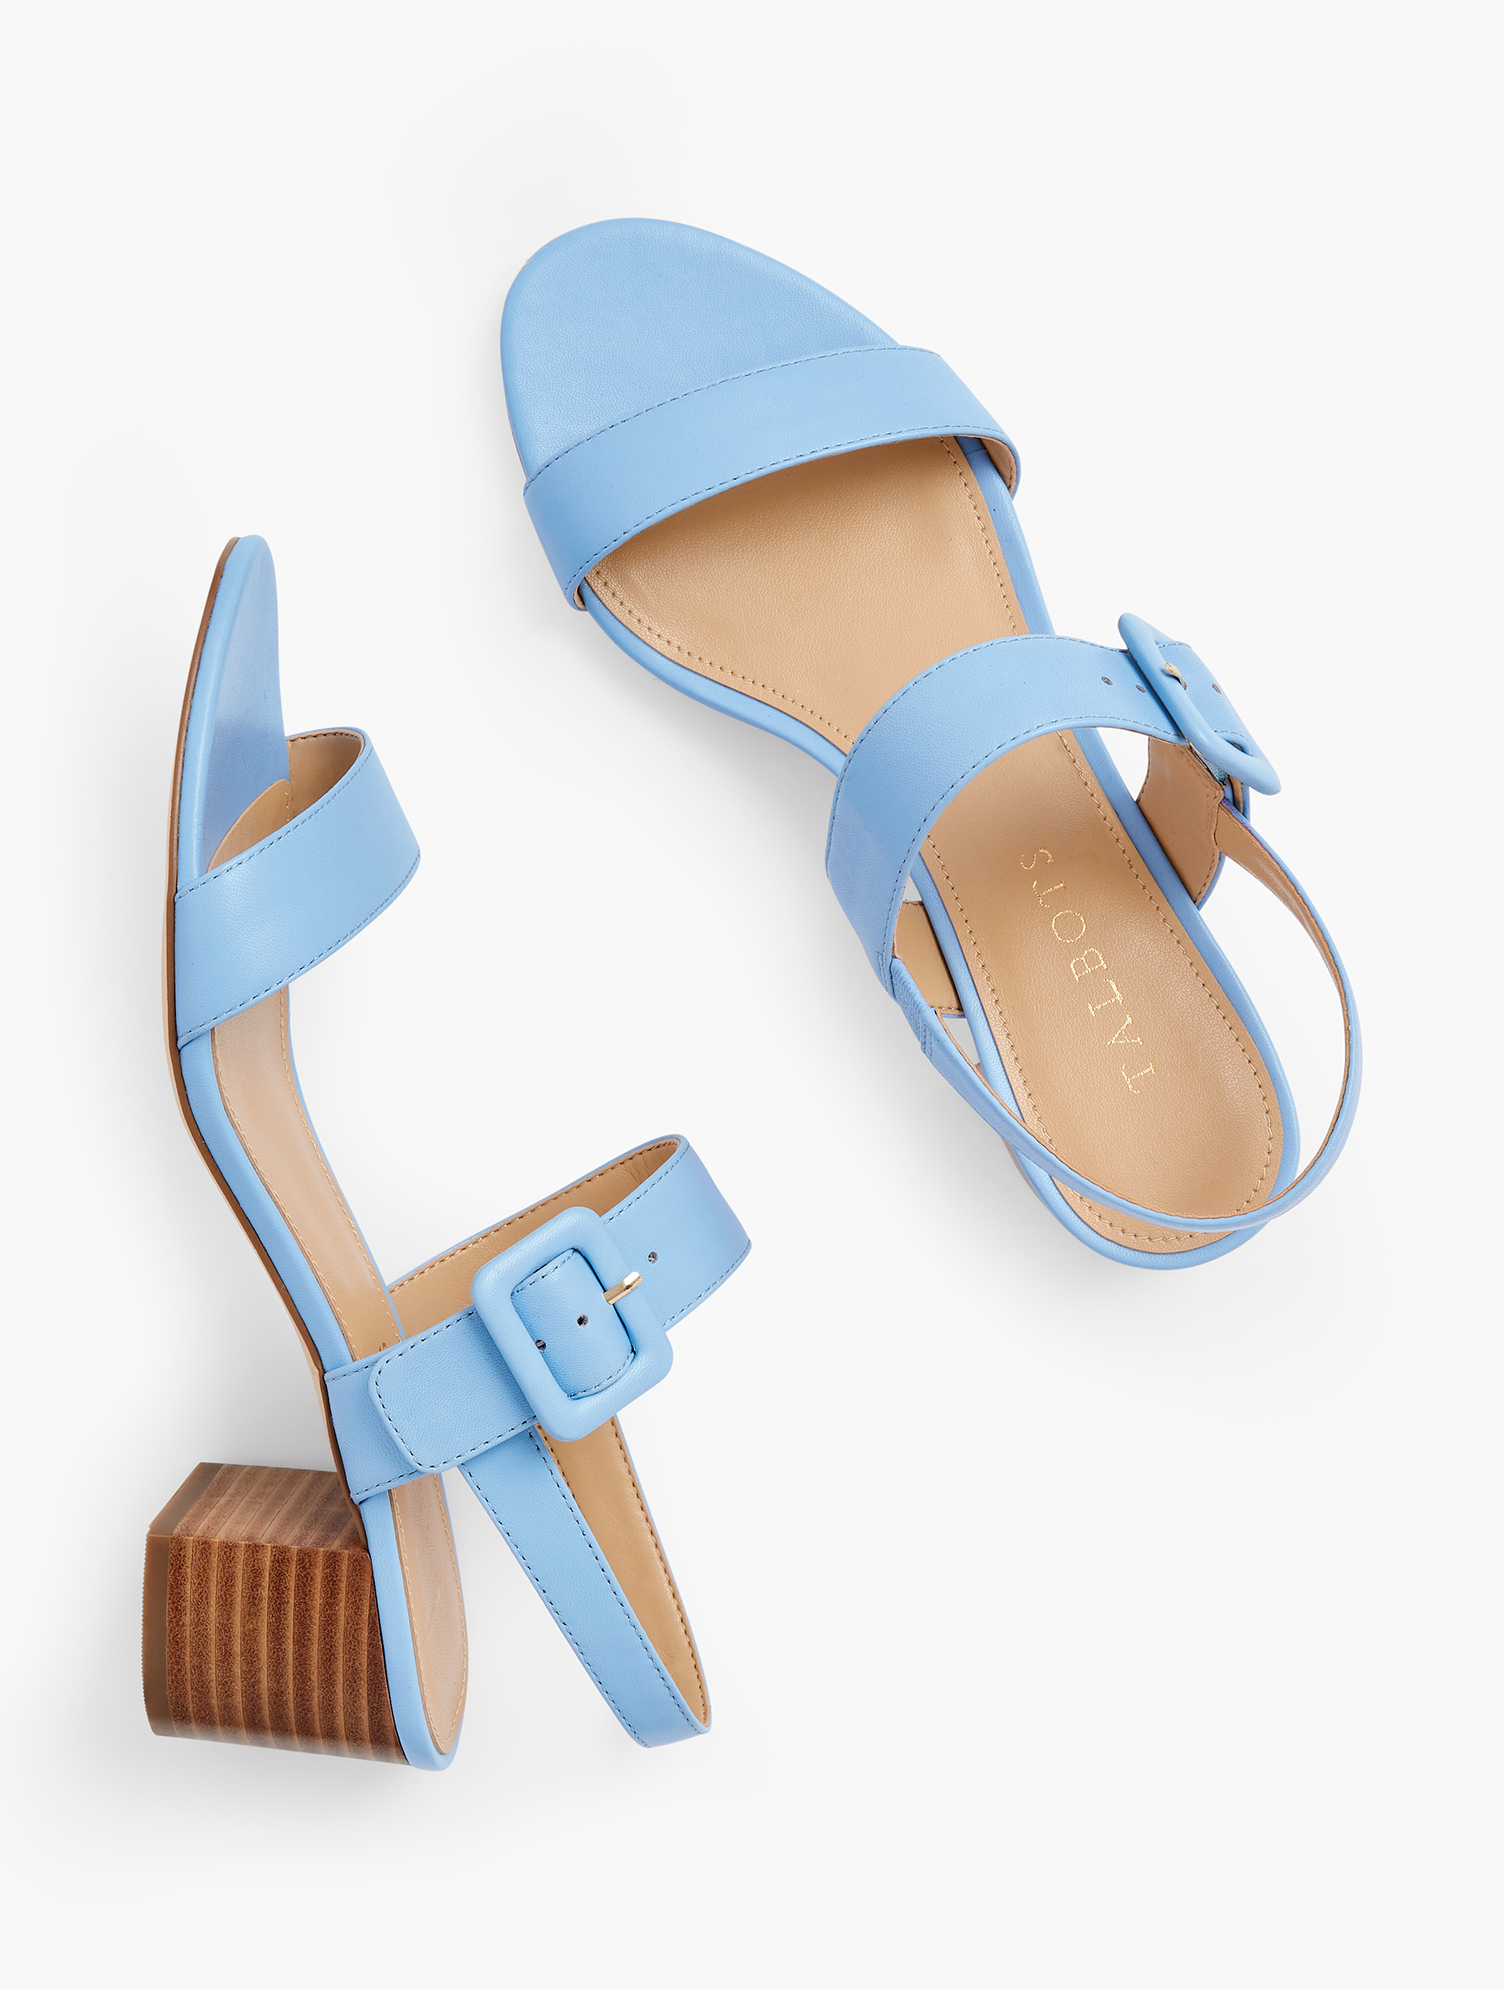 Our chic Mimi block-heel sandals. With fashionable, buckle closure. Crafted from soft Nappa leather for comfort and luxury. Features Gift Box/Gift Wrap is not available for this item 2 inches heel Flexible Non Skid Sole 3Mm Memory Foam Footbed Imported Material: 100% Leather Mimi Leather Block Heel Sandals - Laguna Blue - 7M Talbots